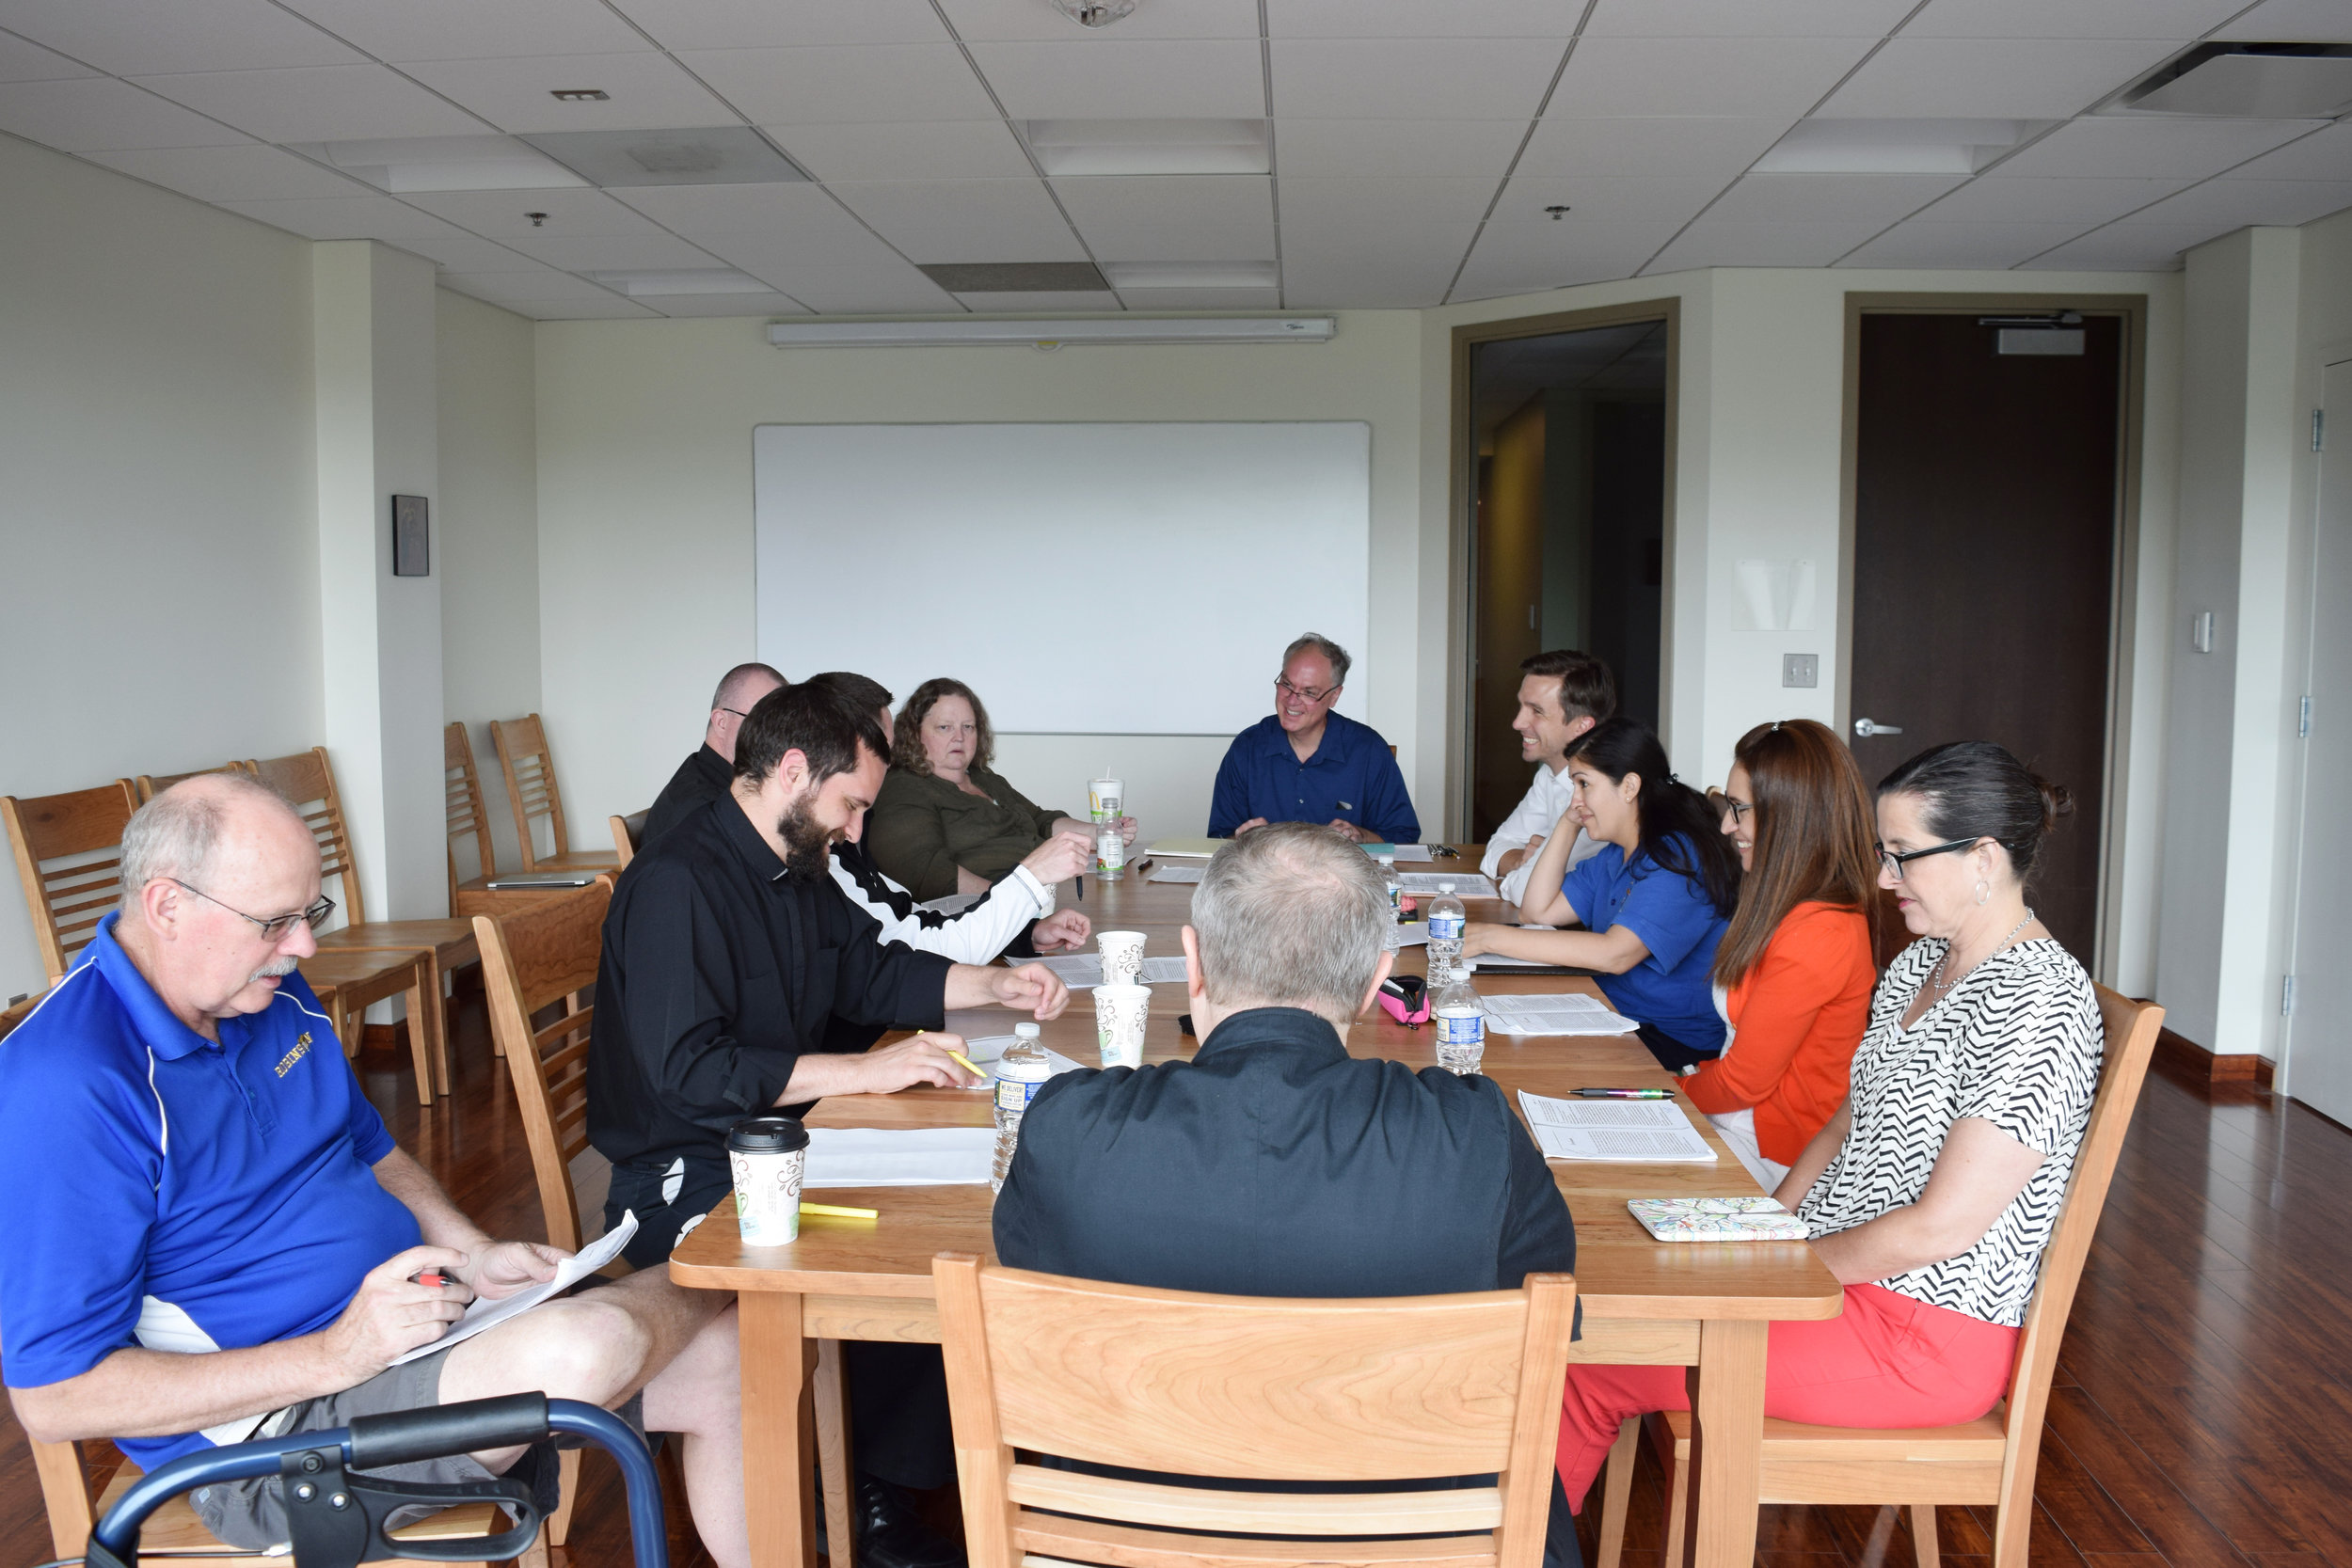 Our first Cana Table Seminar in our new headquarters